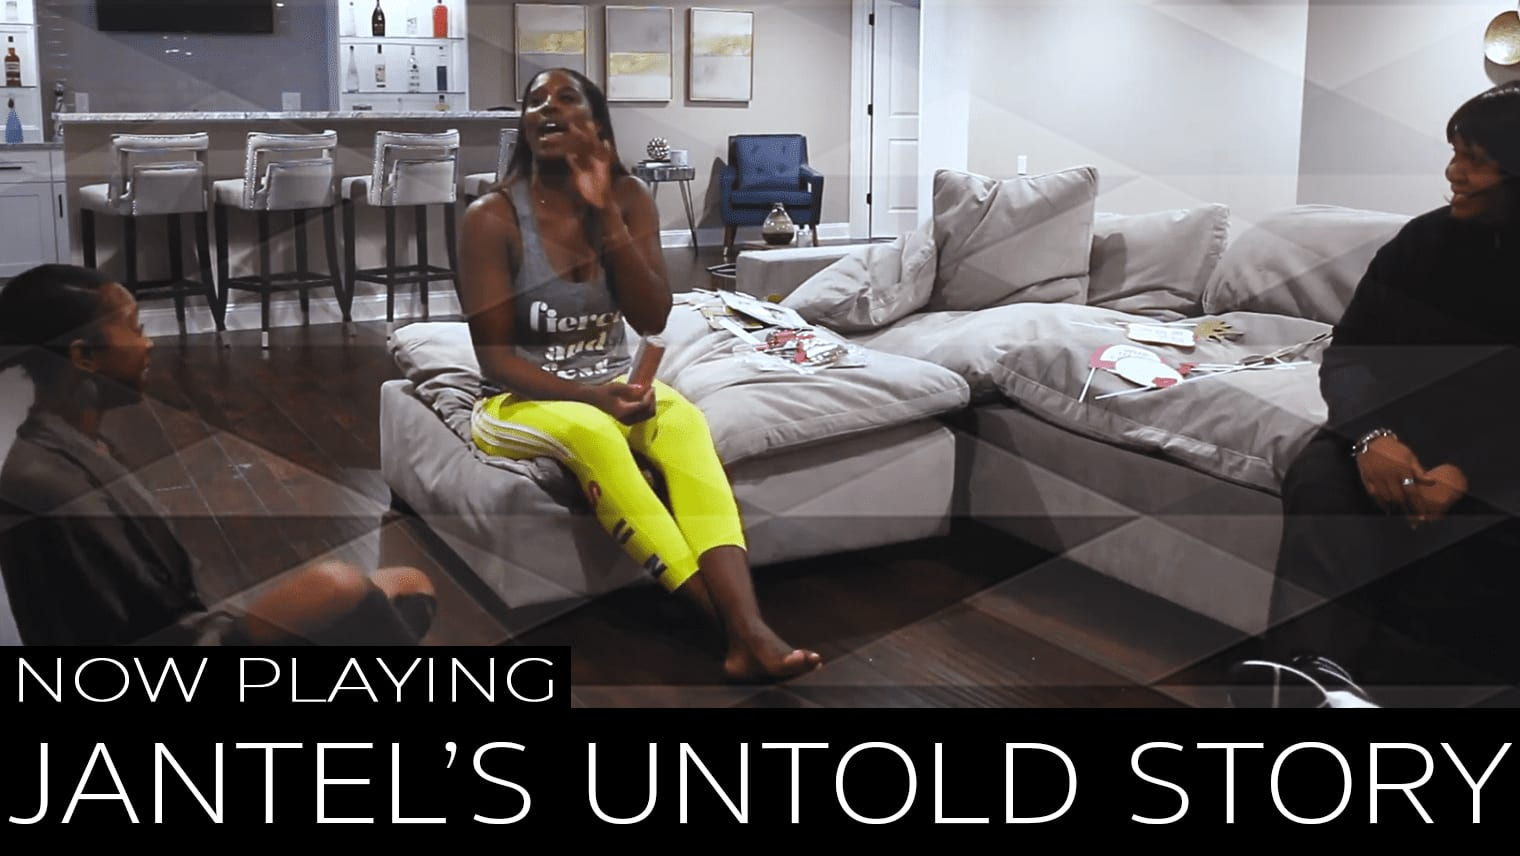 Video: The Untold Story of Jantel Lavender